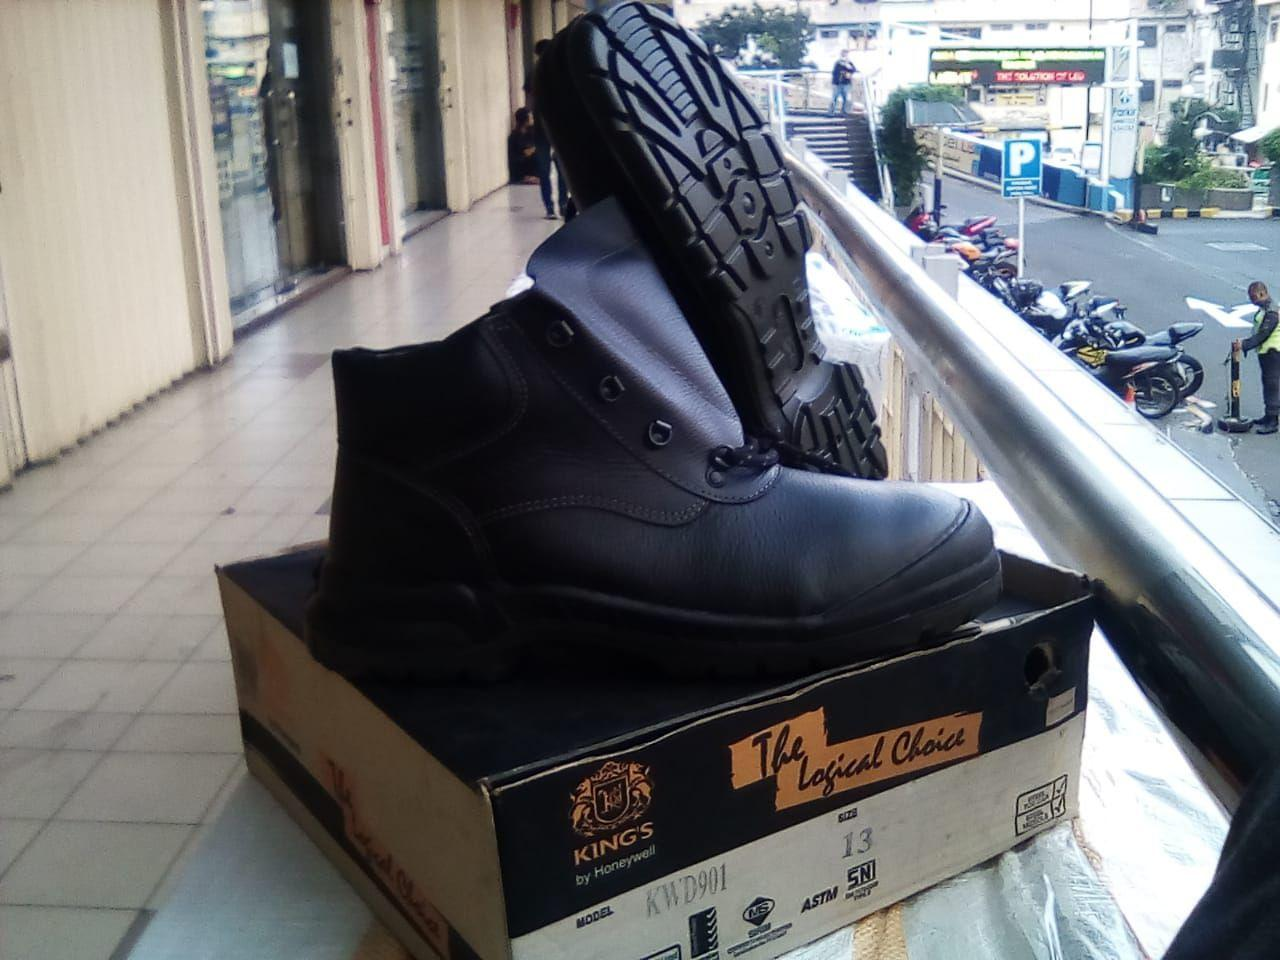 harga safety boots, safety shoes, shoes king, sepatu safety king, sepatu king, harga sepatu safety king, sepatu septi king, harga safety shoes, harga sepatu king, safety shoes king